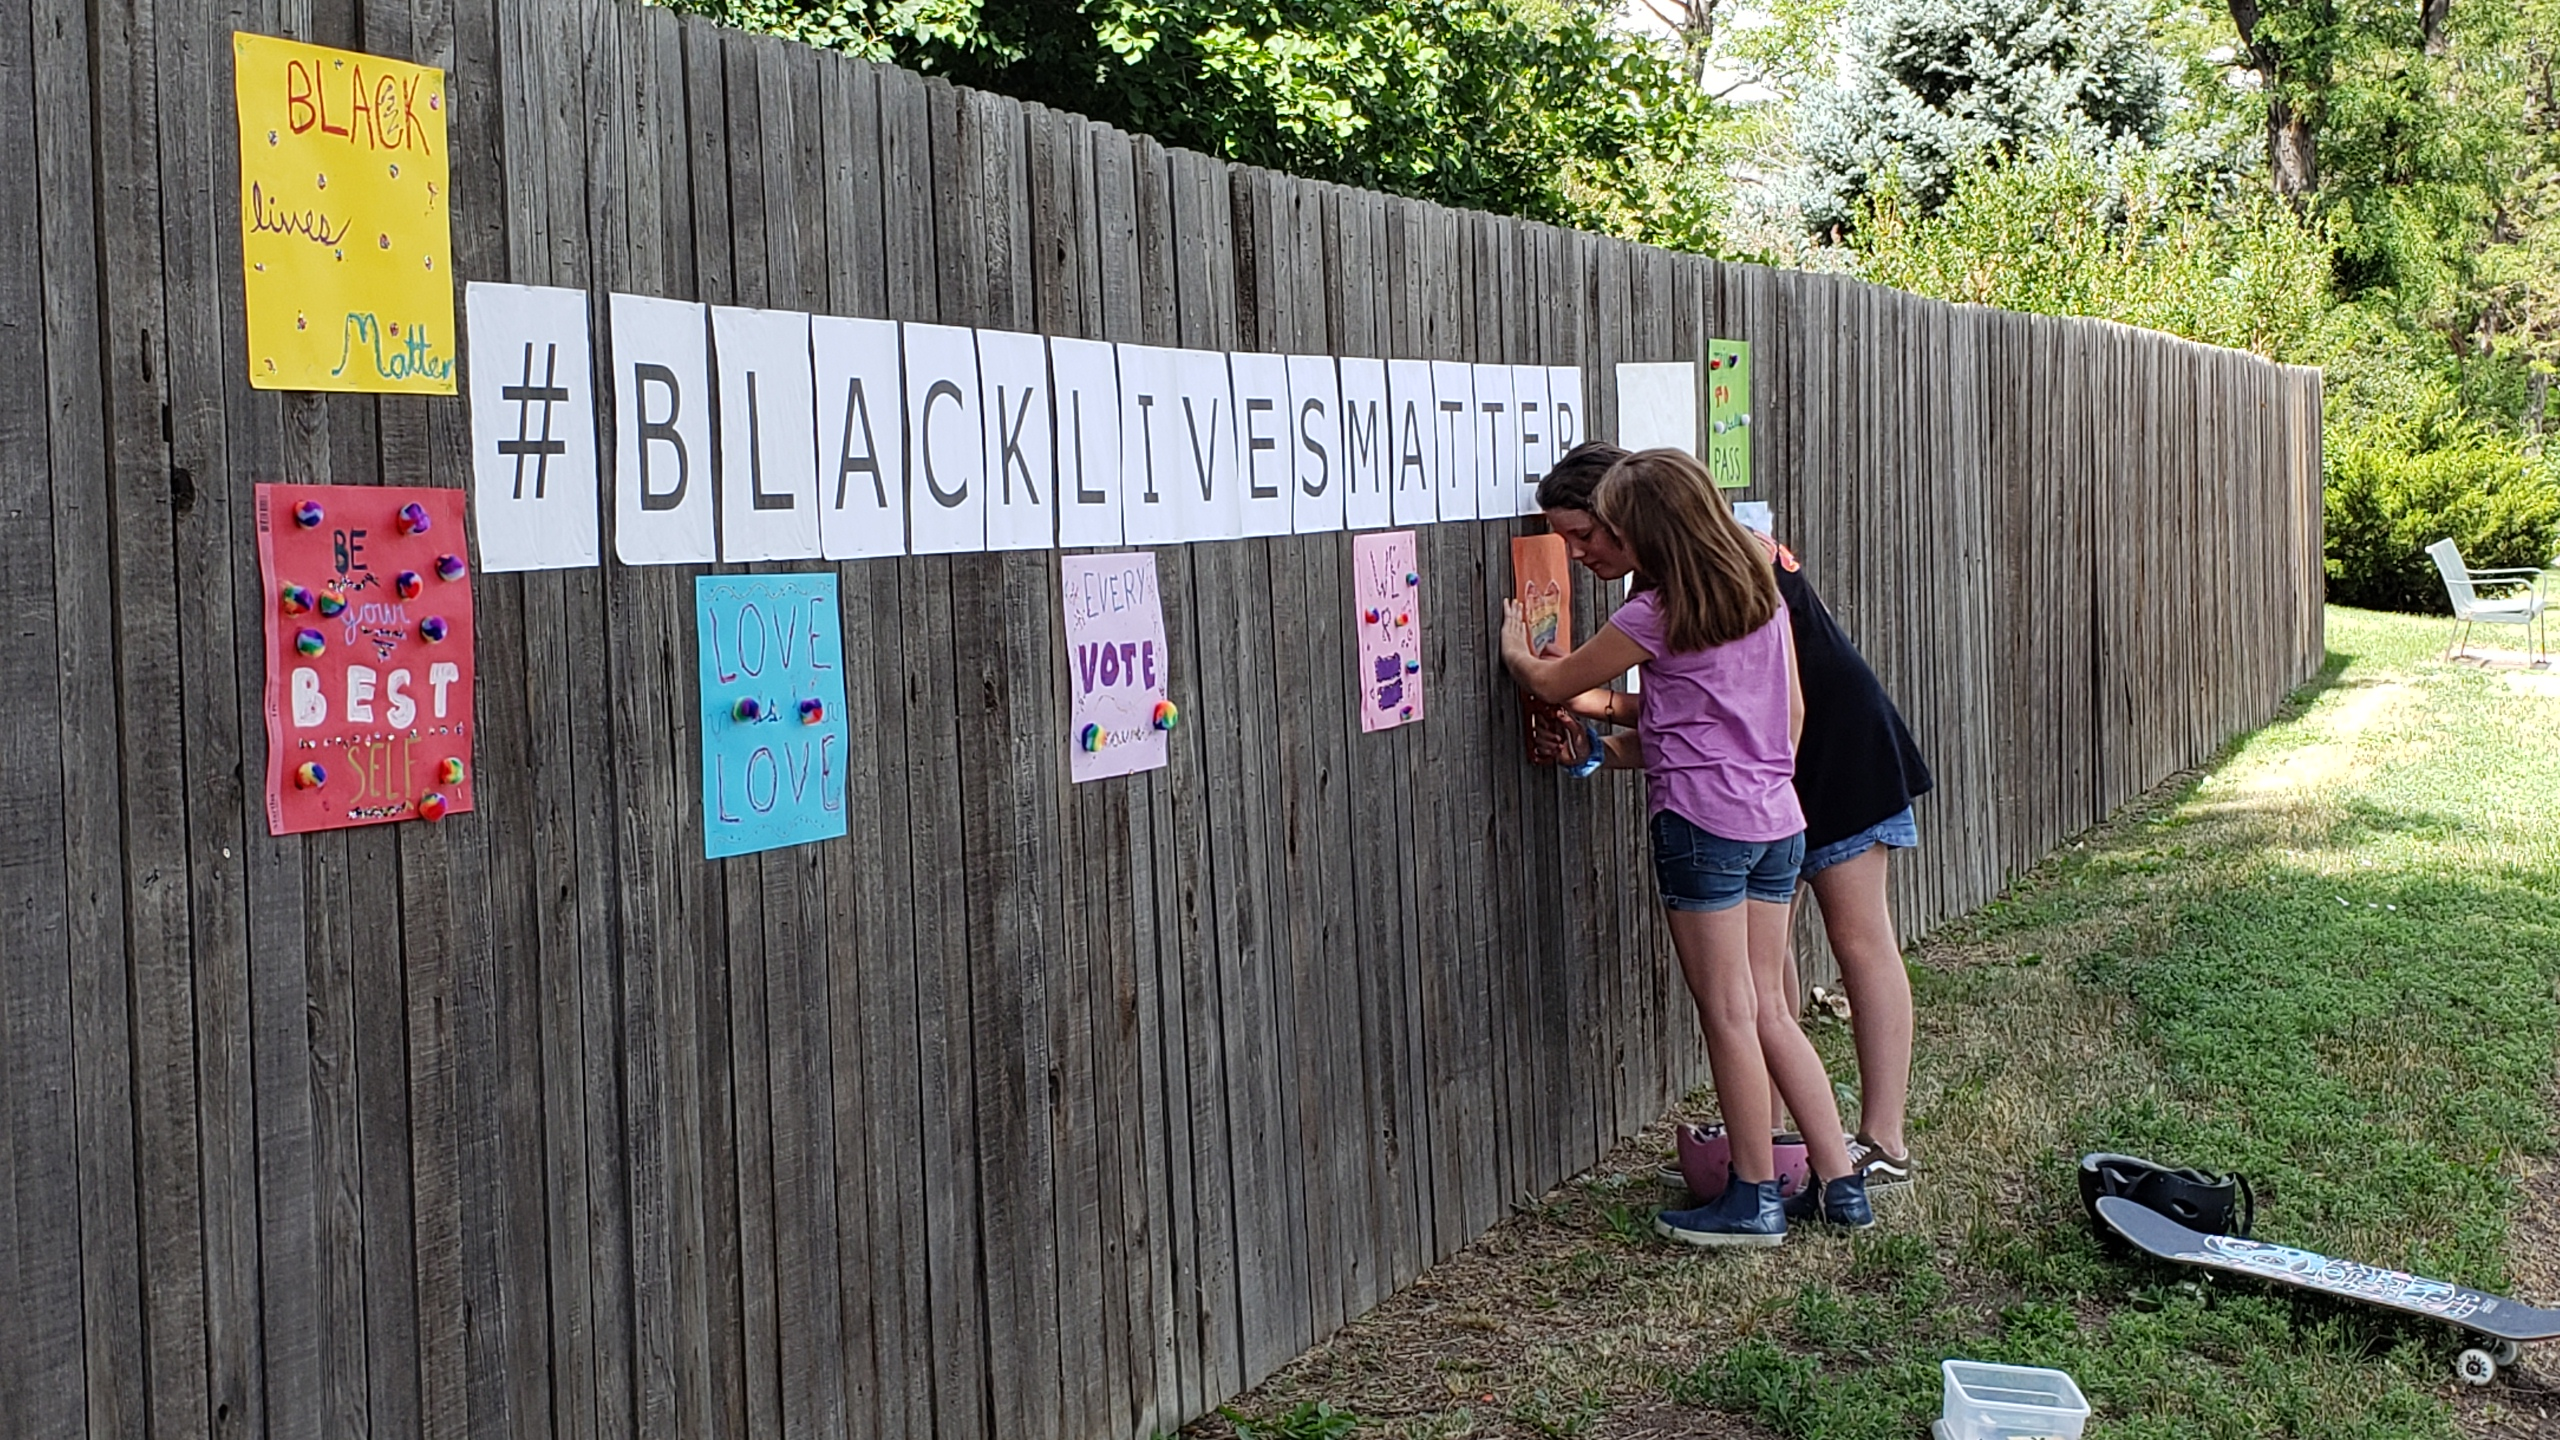 Olive (white girl; purple shirt; denim shorts) and Janie (white girl; black tshirt; denim shorts) working together to staple a sign under the #BlackLivesMatter sign. Two helmets and a skateboard are on the ground near their feet.